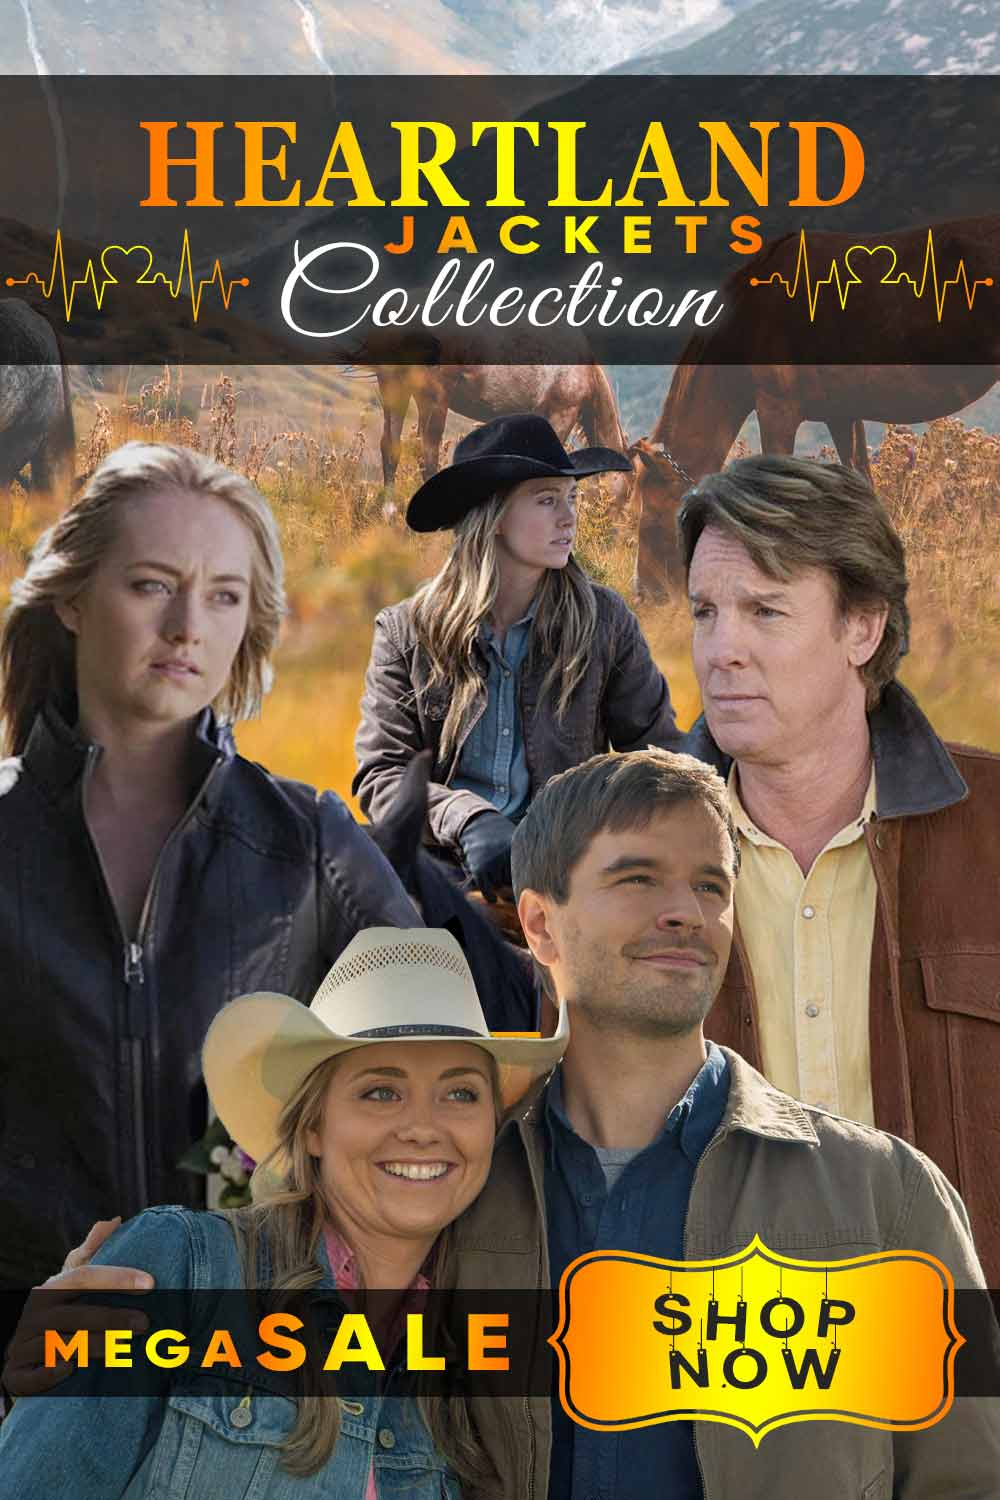 Hearland-Jackets-Collections